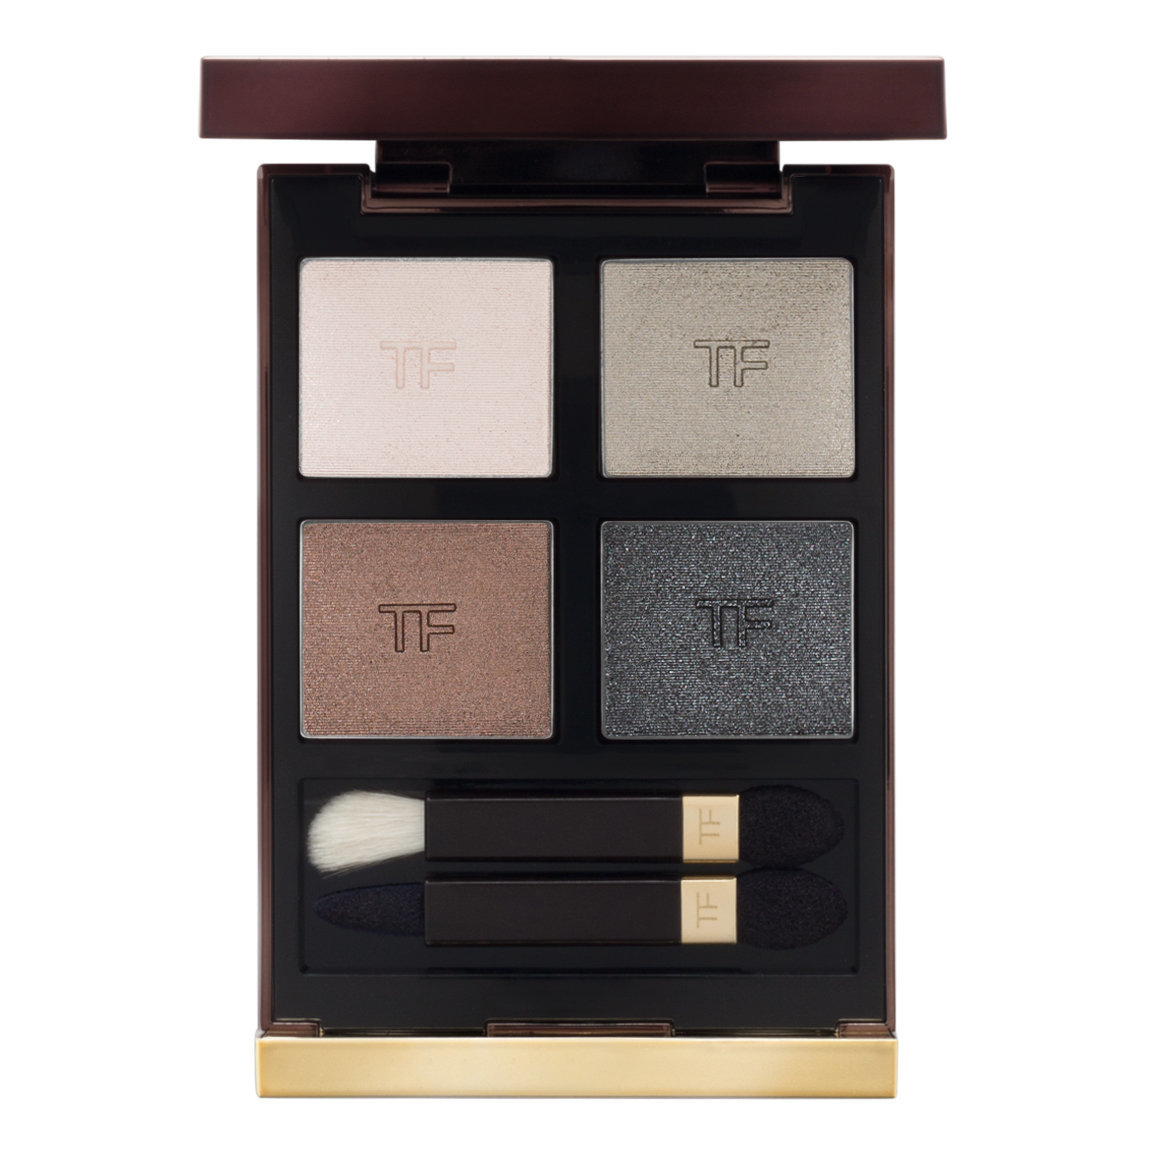 TOM FORD Eye Color Quad Double Indemnity product smear.